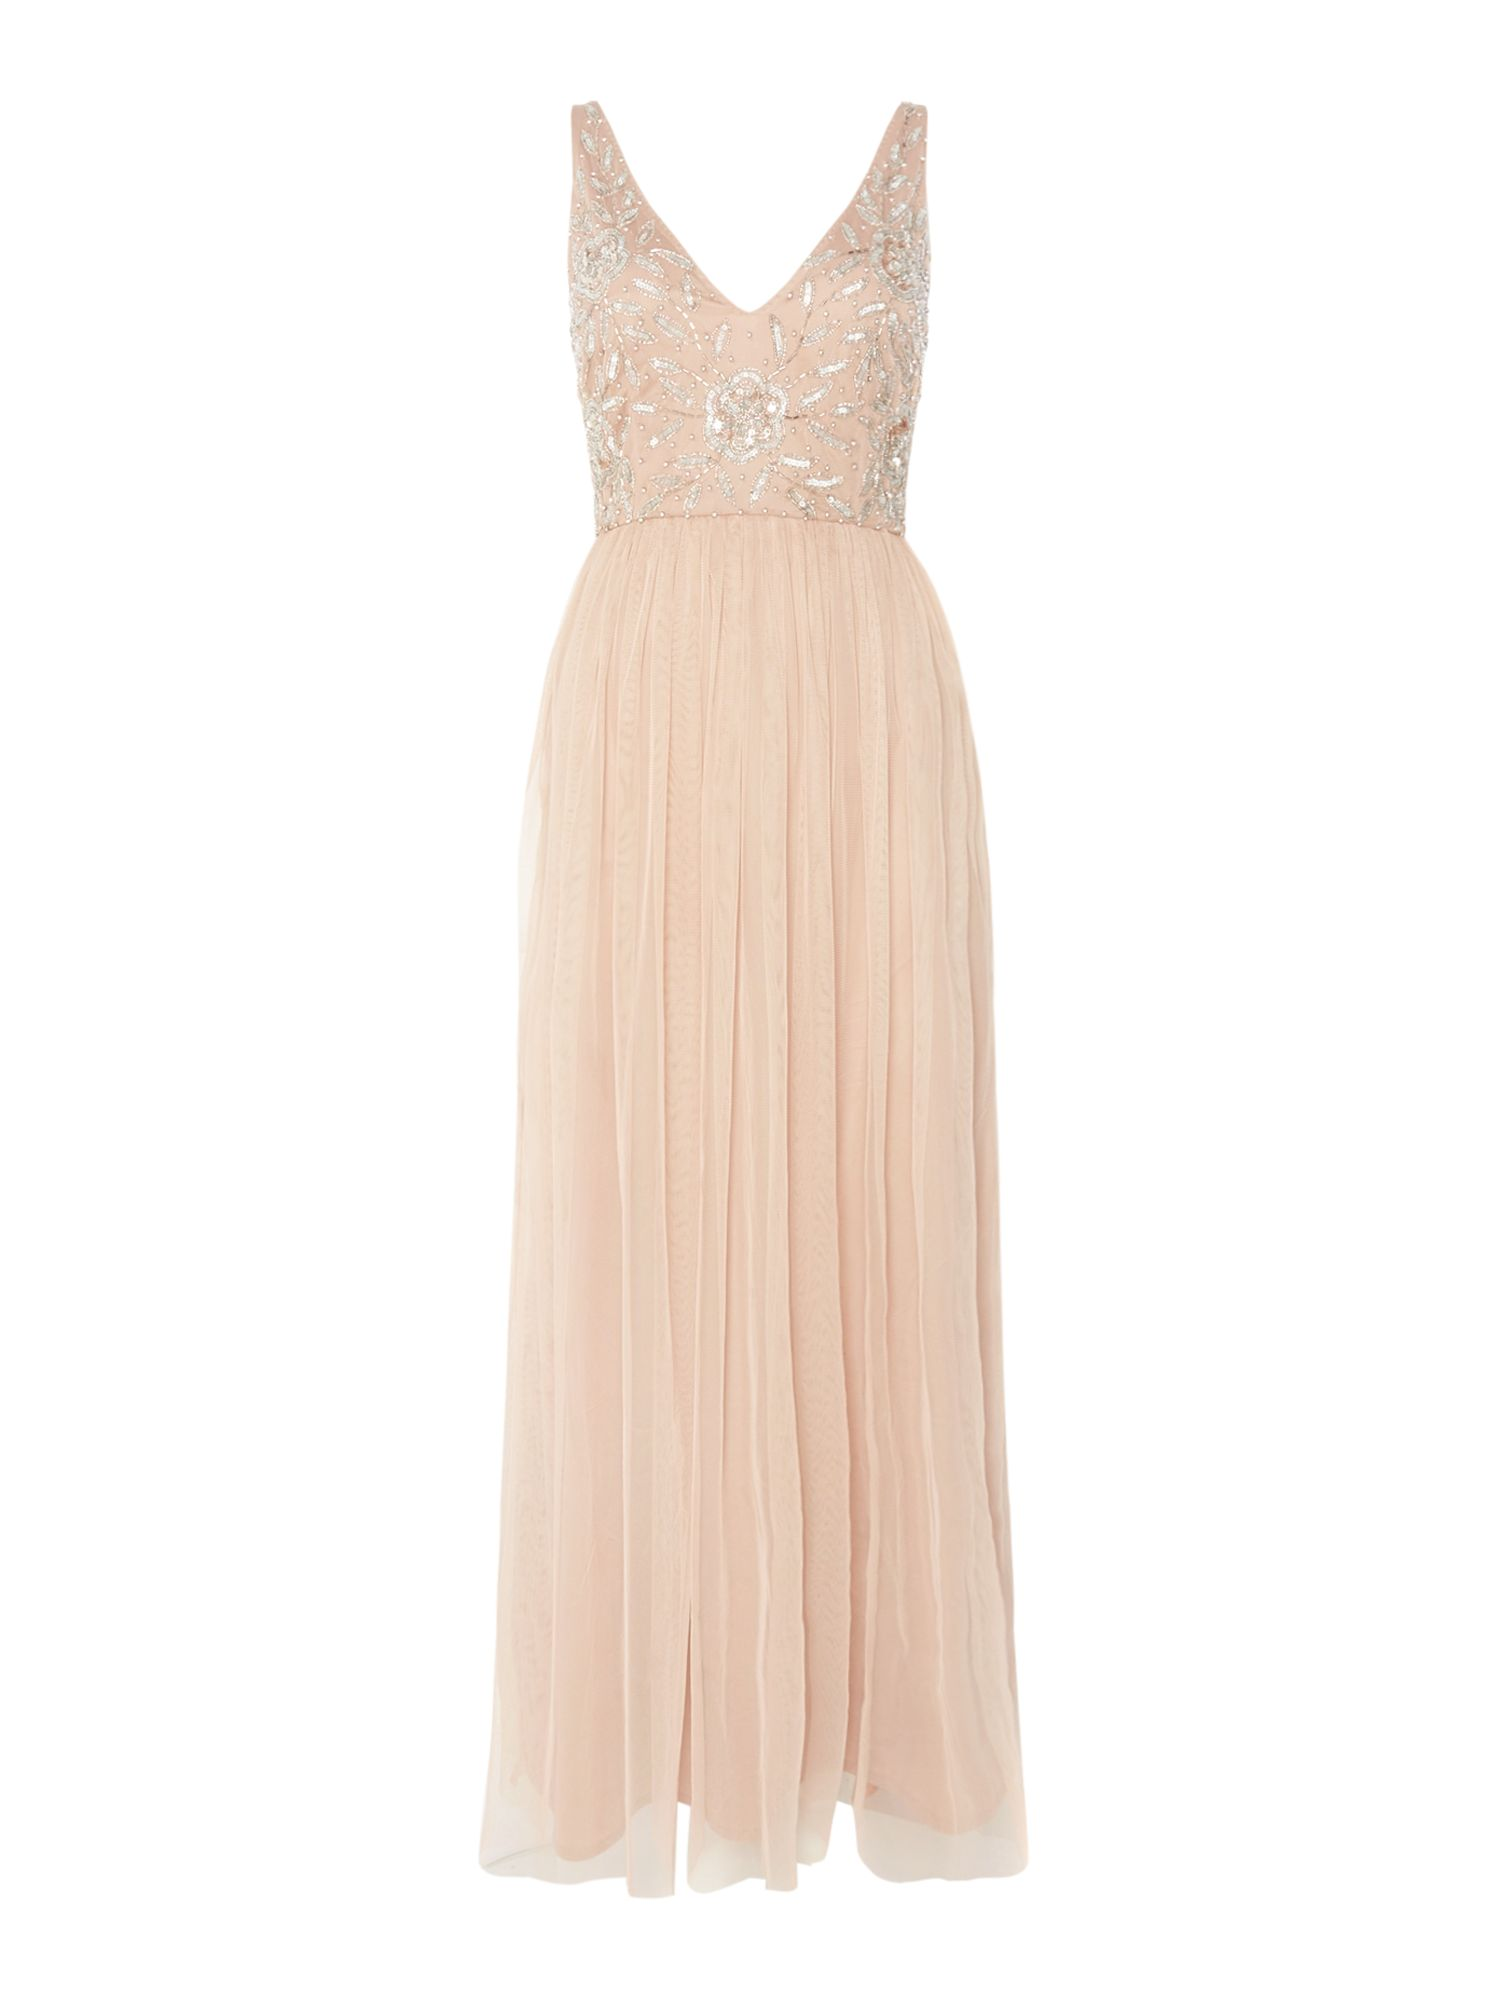 Lace and Beads V neck beaded top maxi dress, Mink